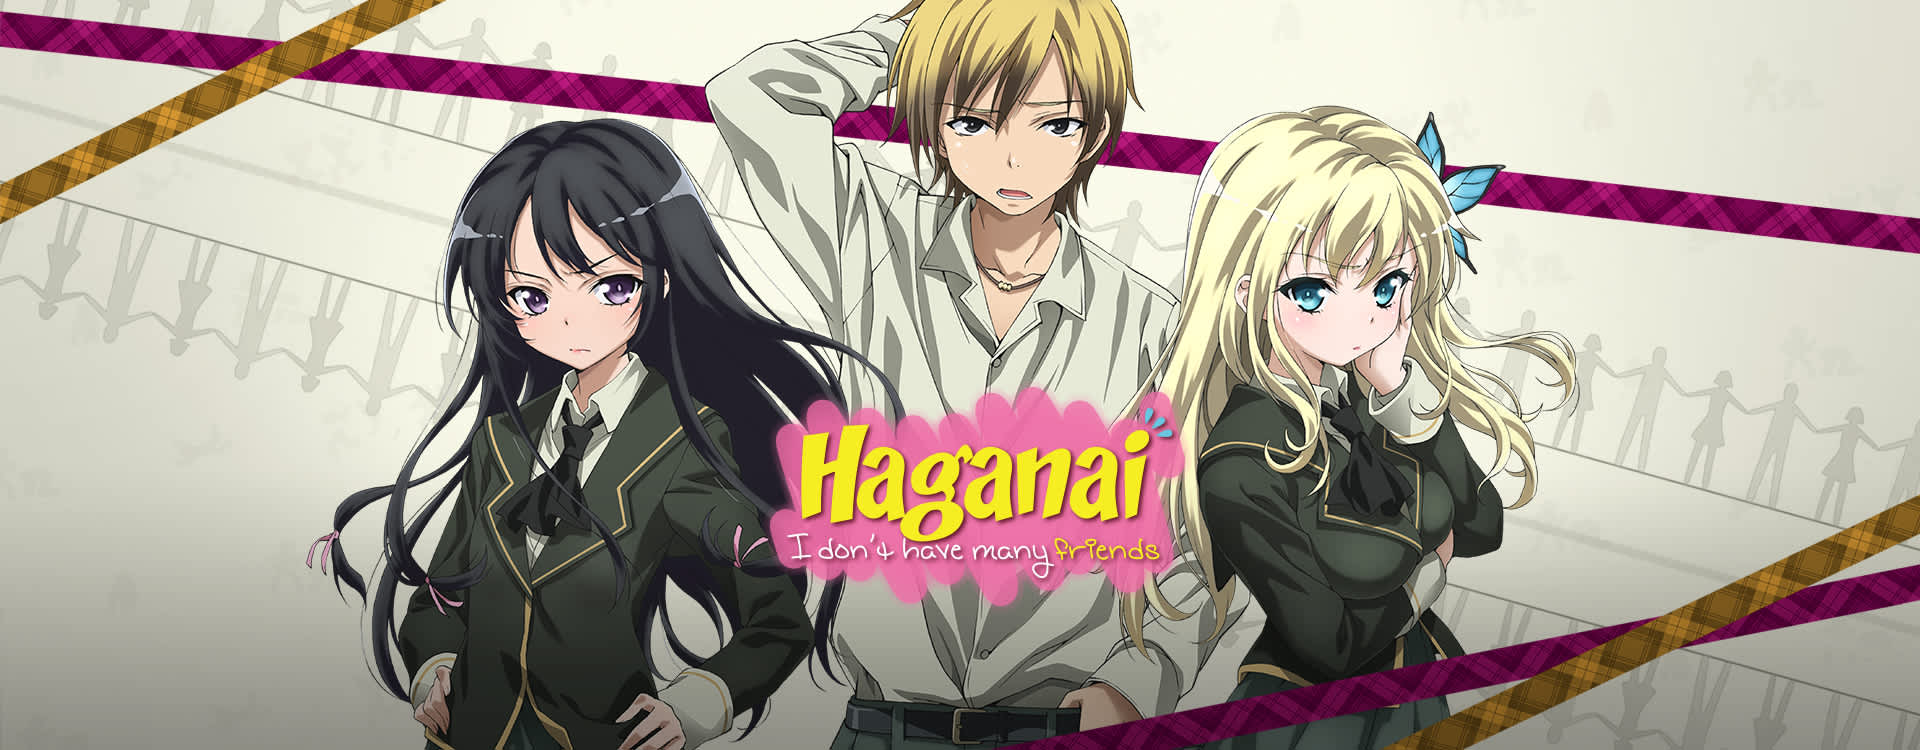 Watch Haganai Episodes Sub & Dub | Comedy, Fan Service Anime